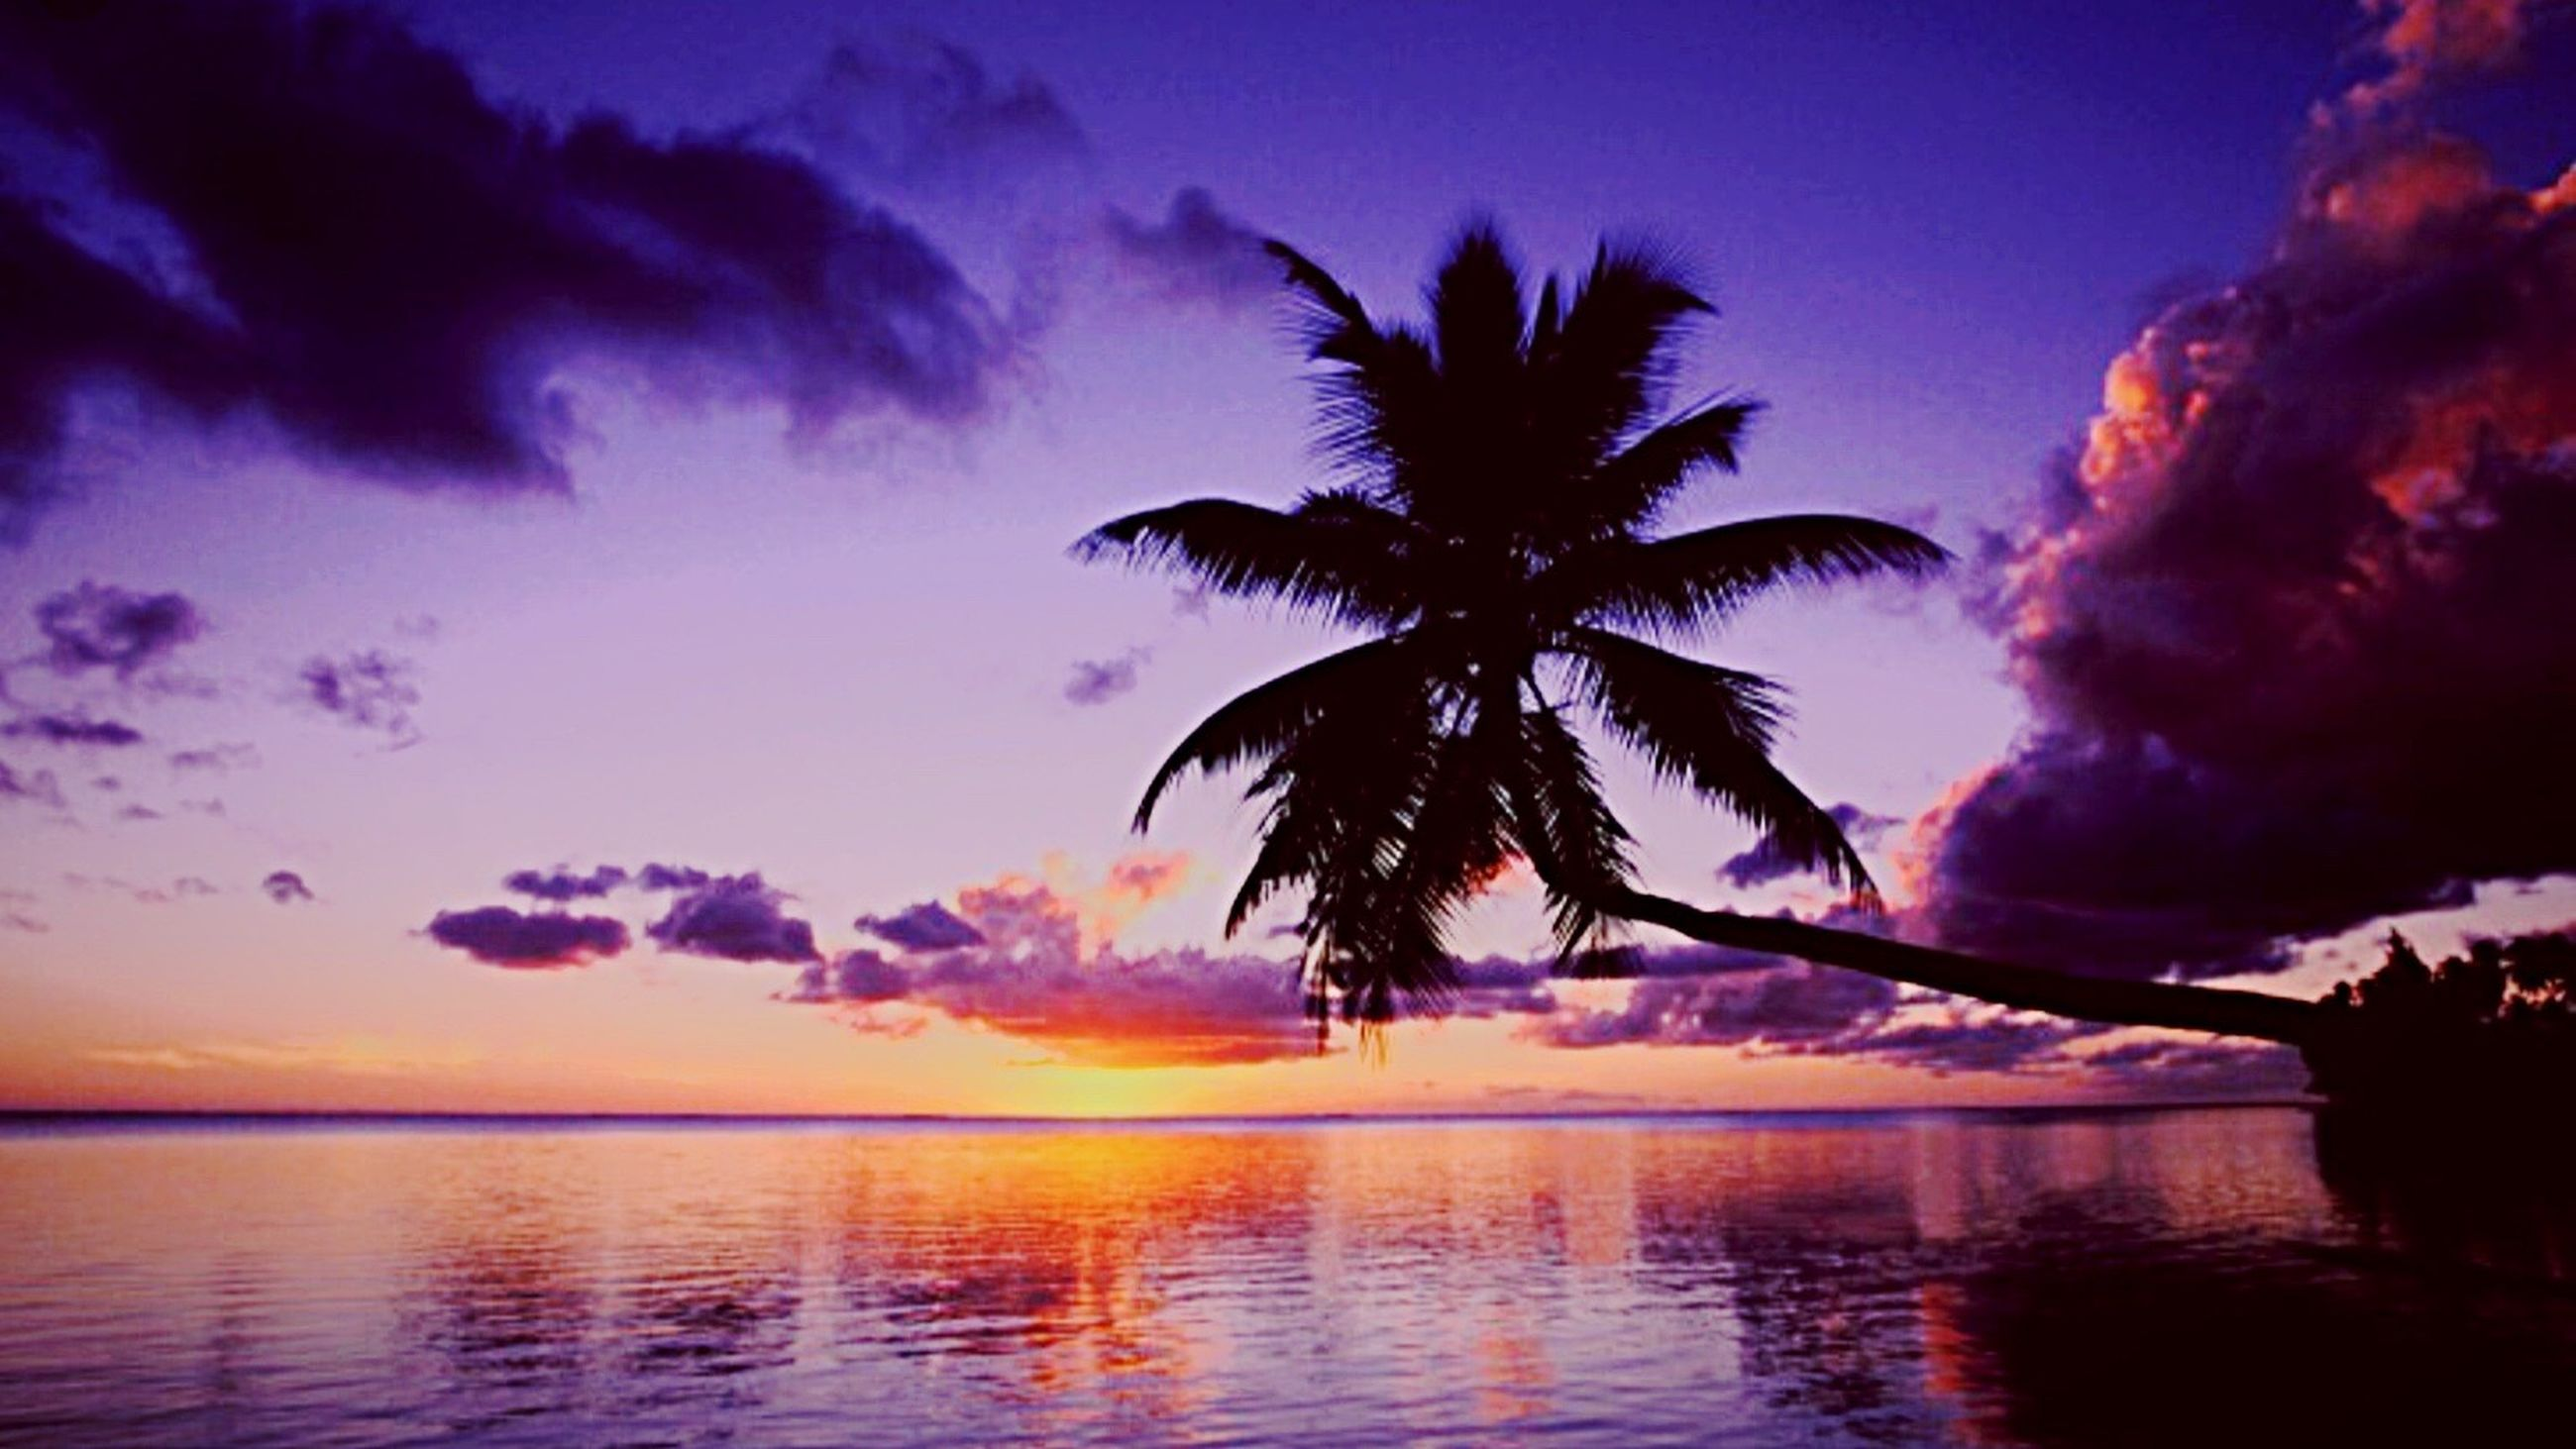 sunset, sky, water, silhouette, tranquil scene, scenics, tranquility, beauty in nature, palm tree, cloud - sky, sea, waterfront, reflection, nature, idyllic, tree, dramatic sky, cloud, horizon over water, lake